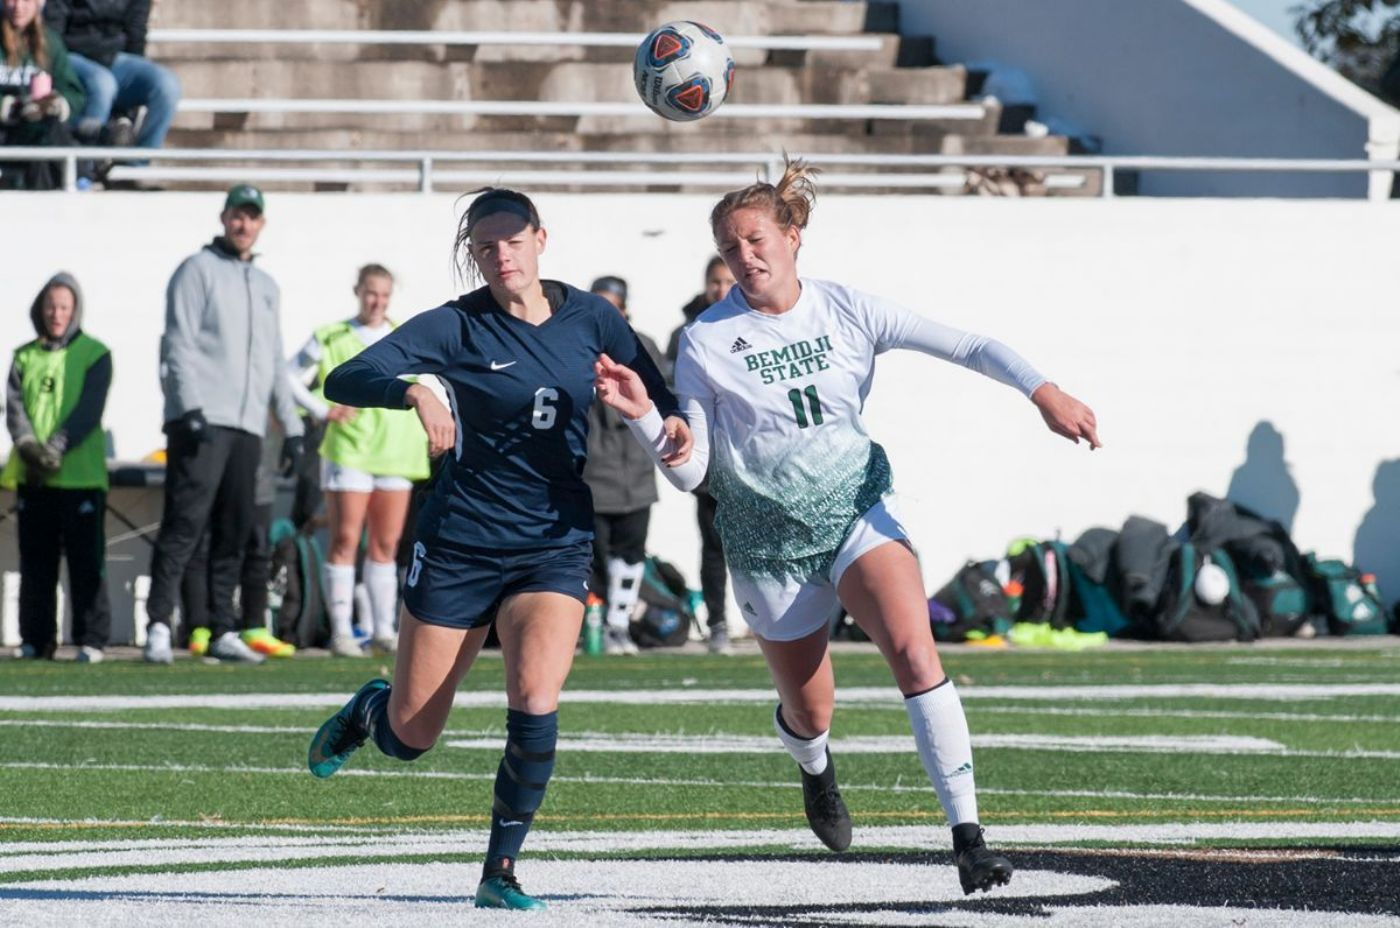 Becker and Wendt propel Bemidji State Soccer to 2-1 win at Concordia-St. Paul